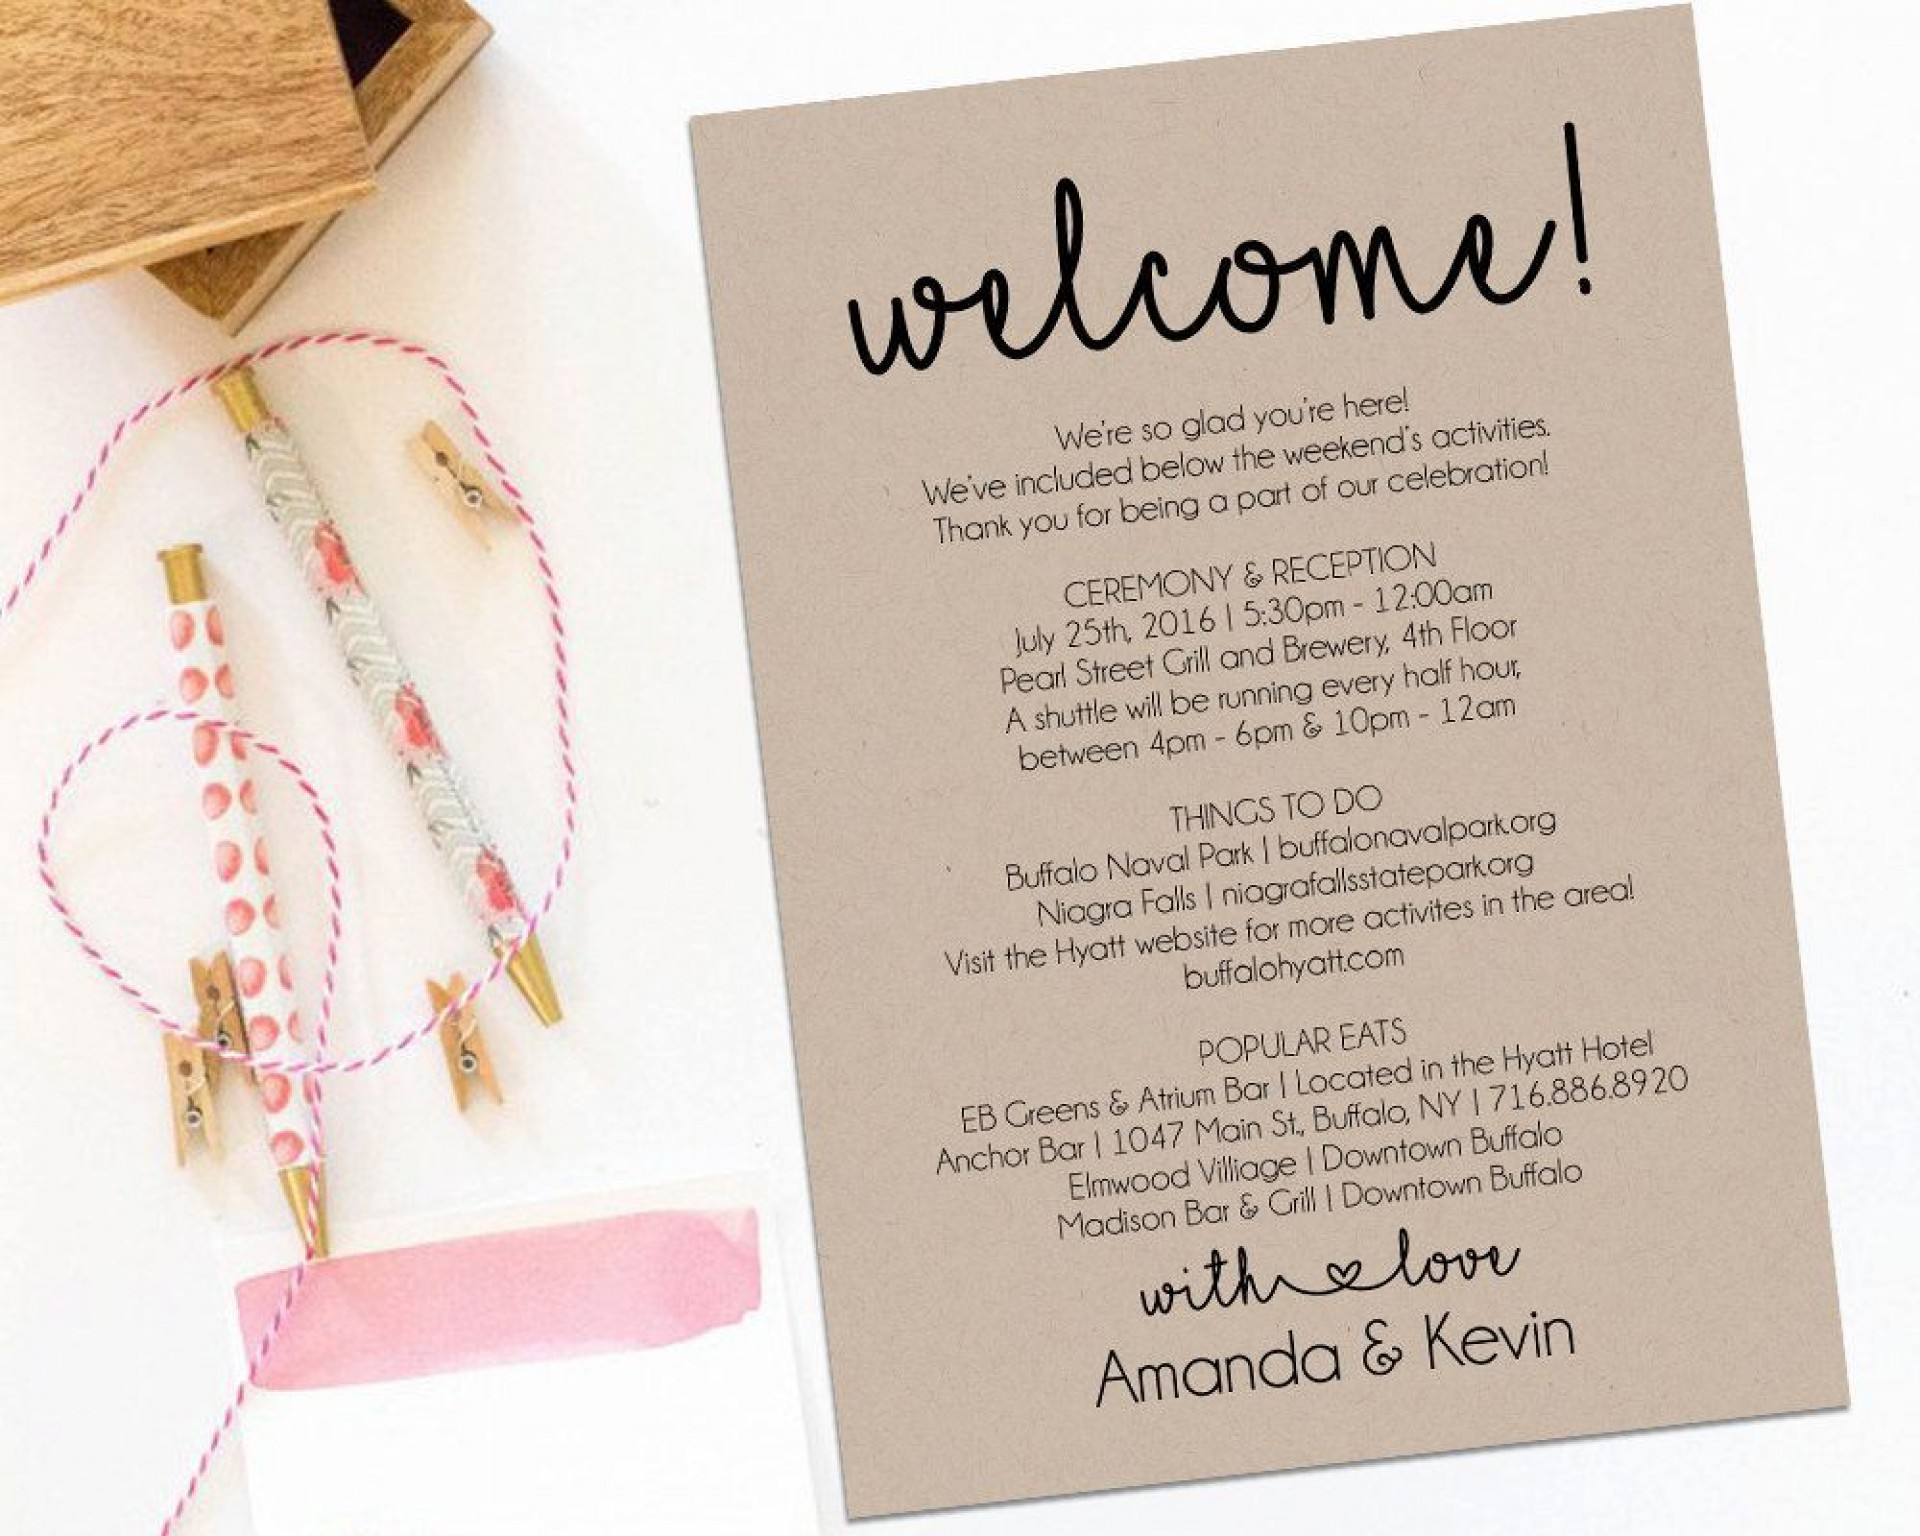 000 Unforgettable Wedding Guest Welcome Letter Template Picture 1920